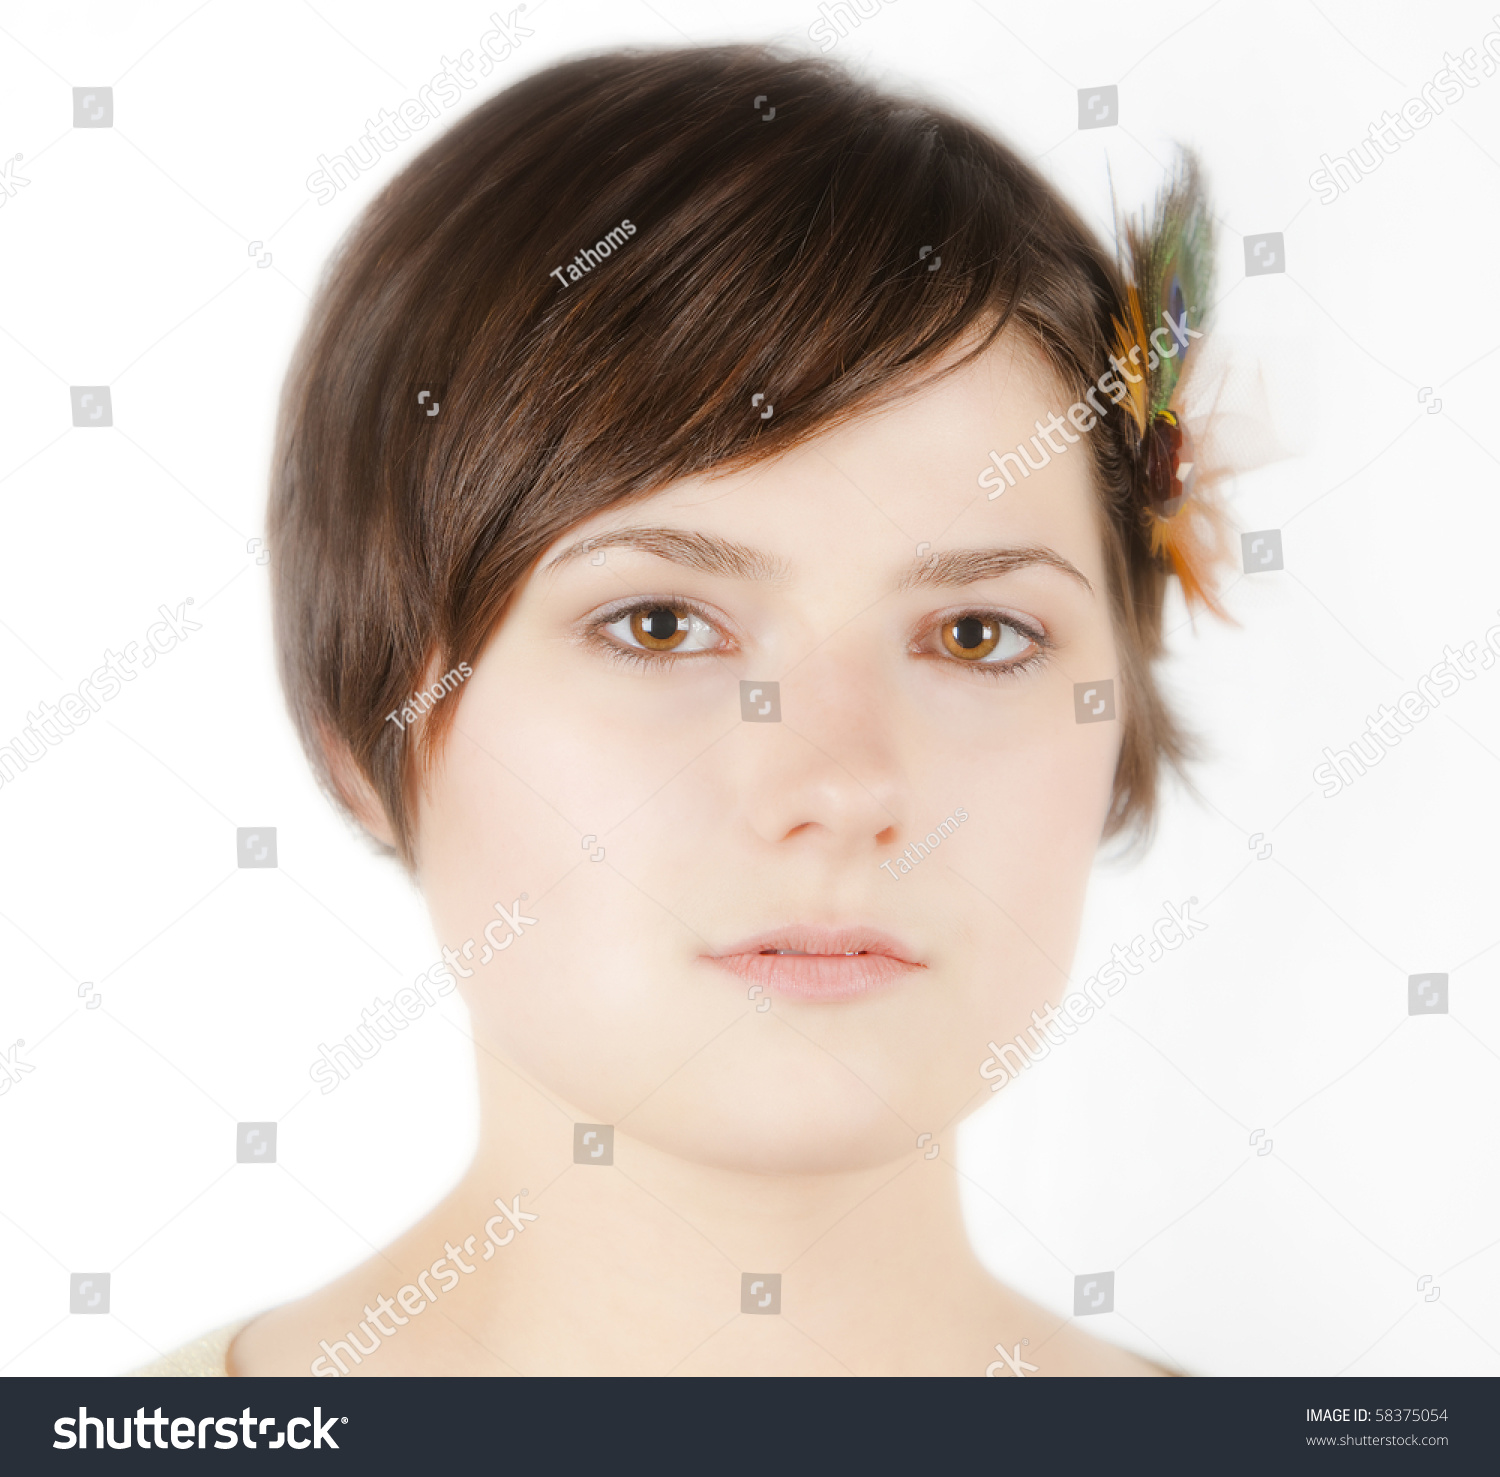 Portrait of a Girl.